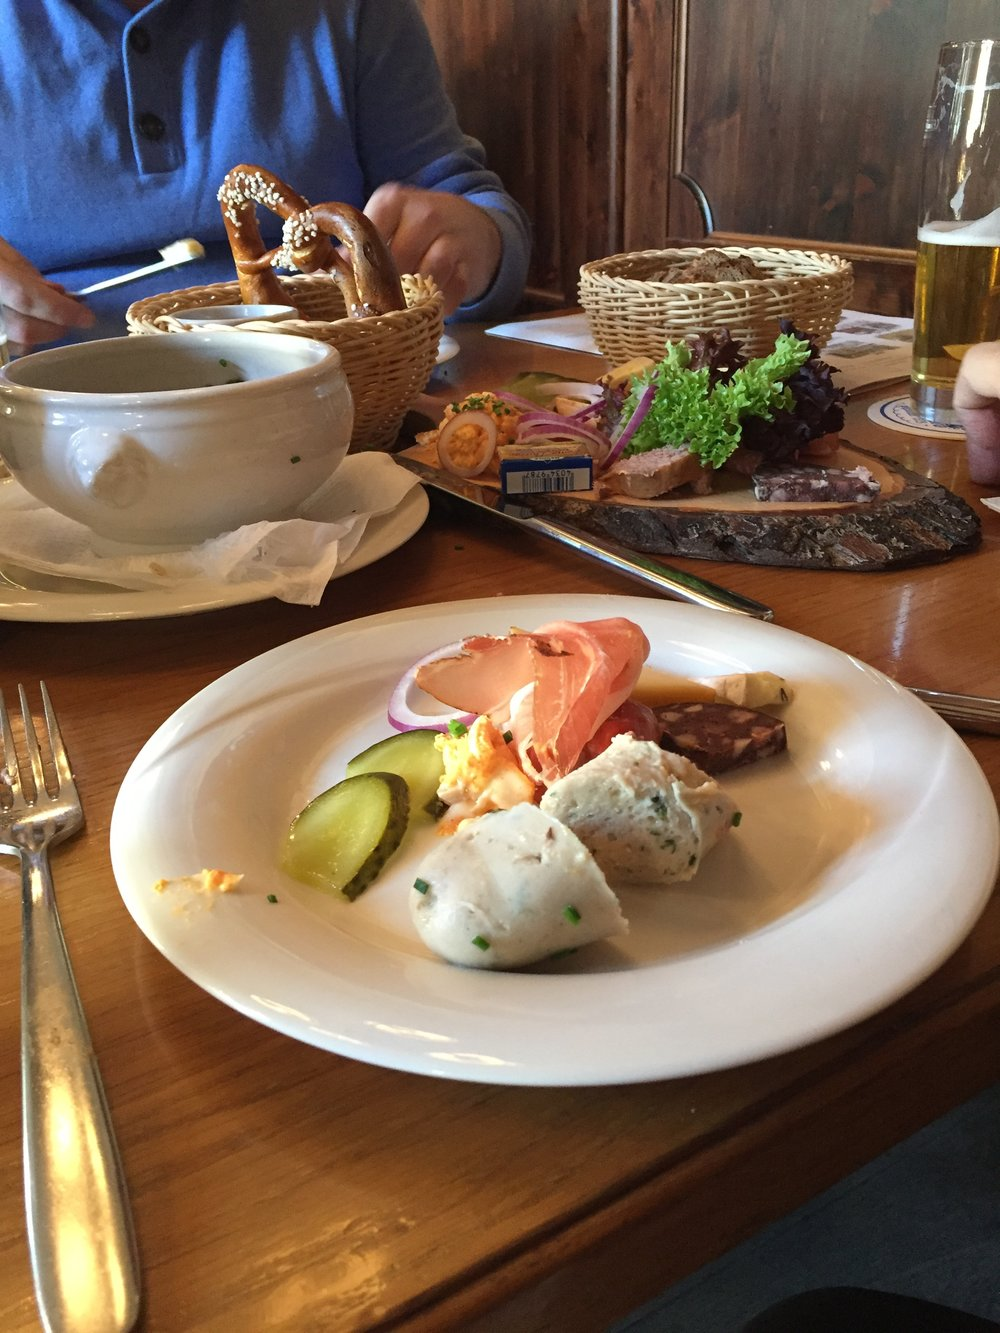 Our pub lunch of sausage, pickles, pretzels and beer